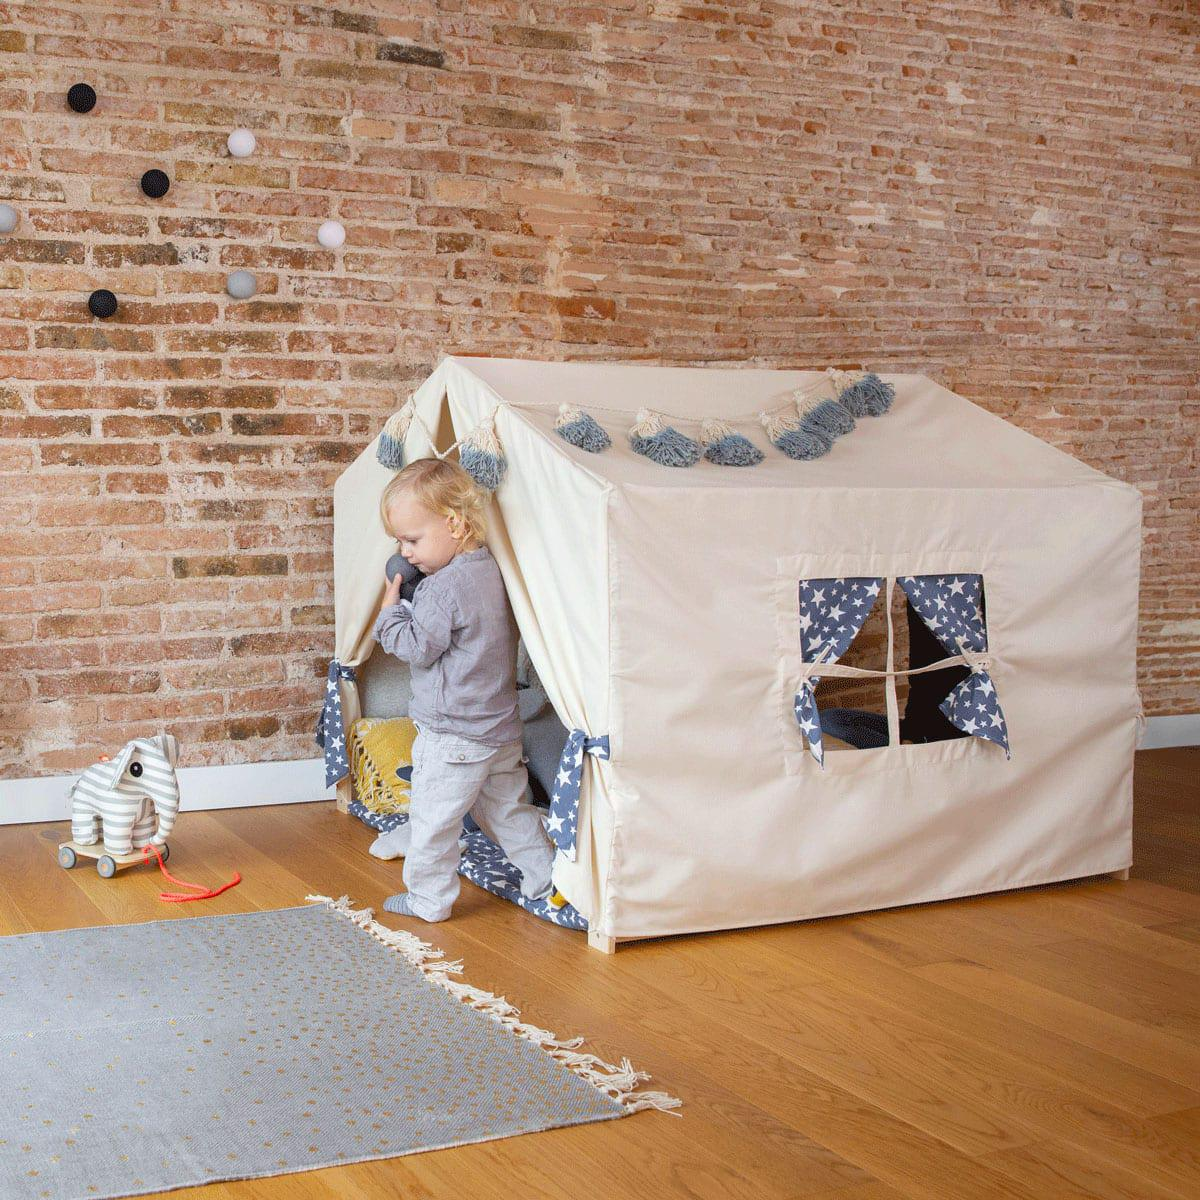 Textile habillage cabane PLAYHOUSE By A.K. jeans